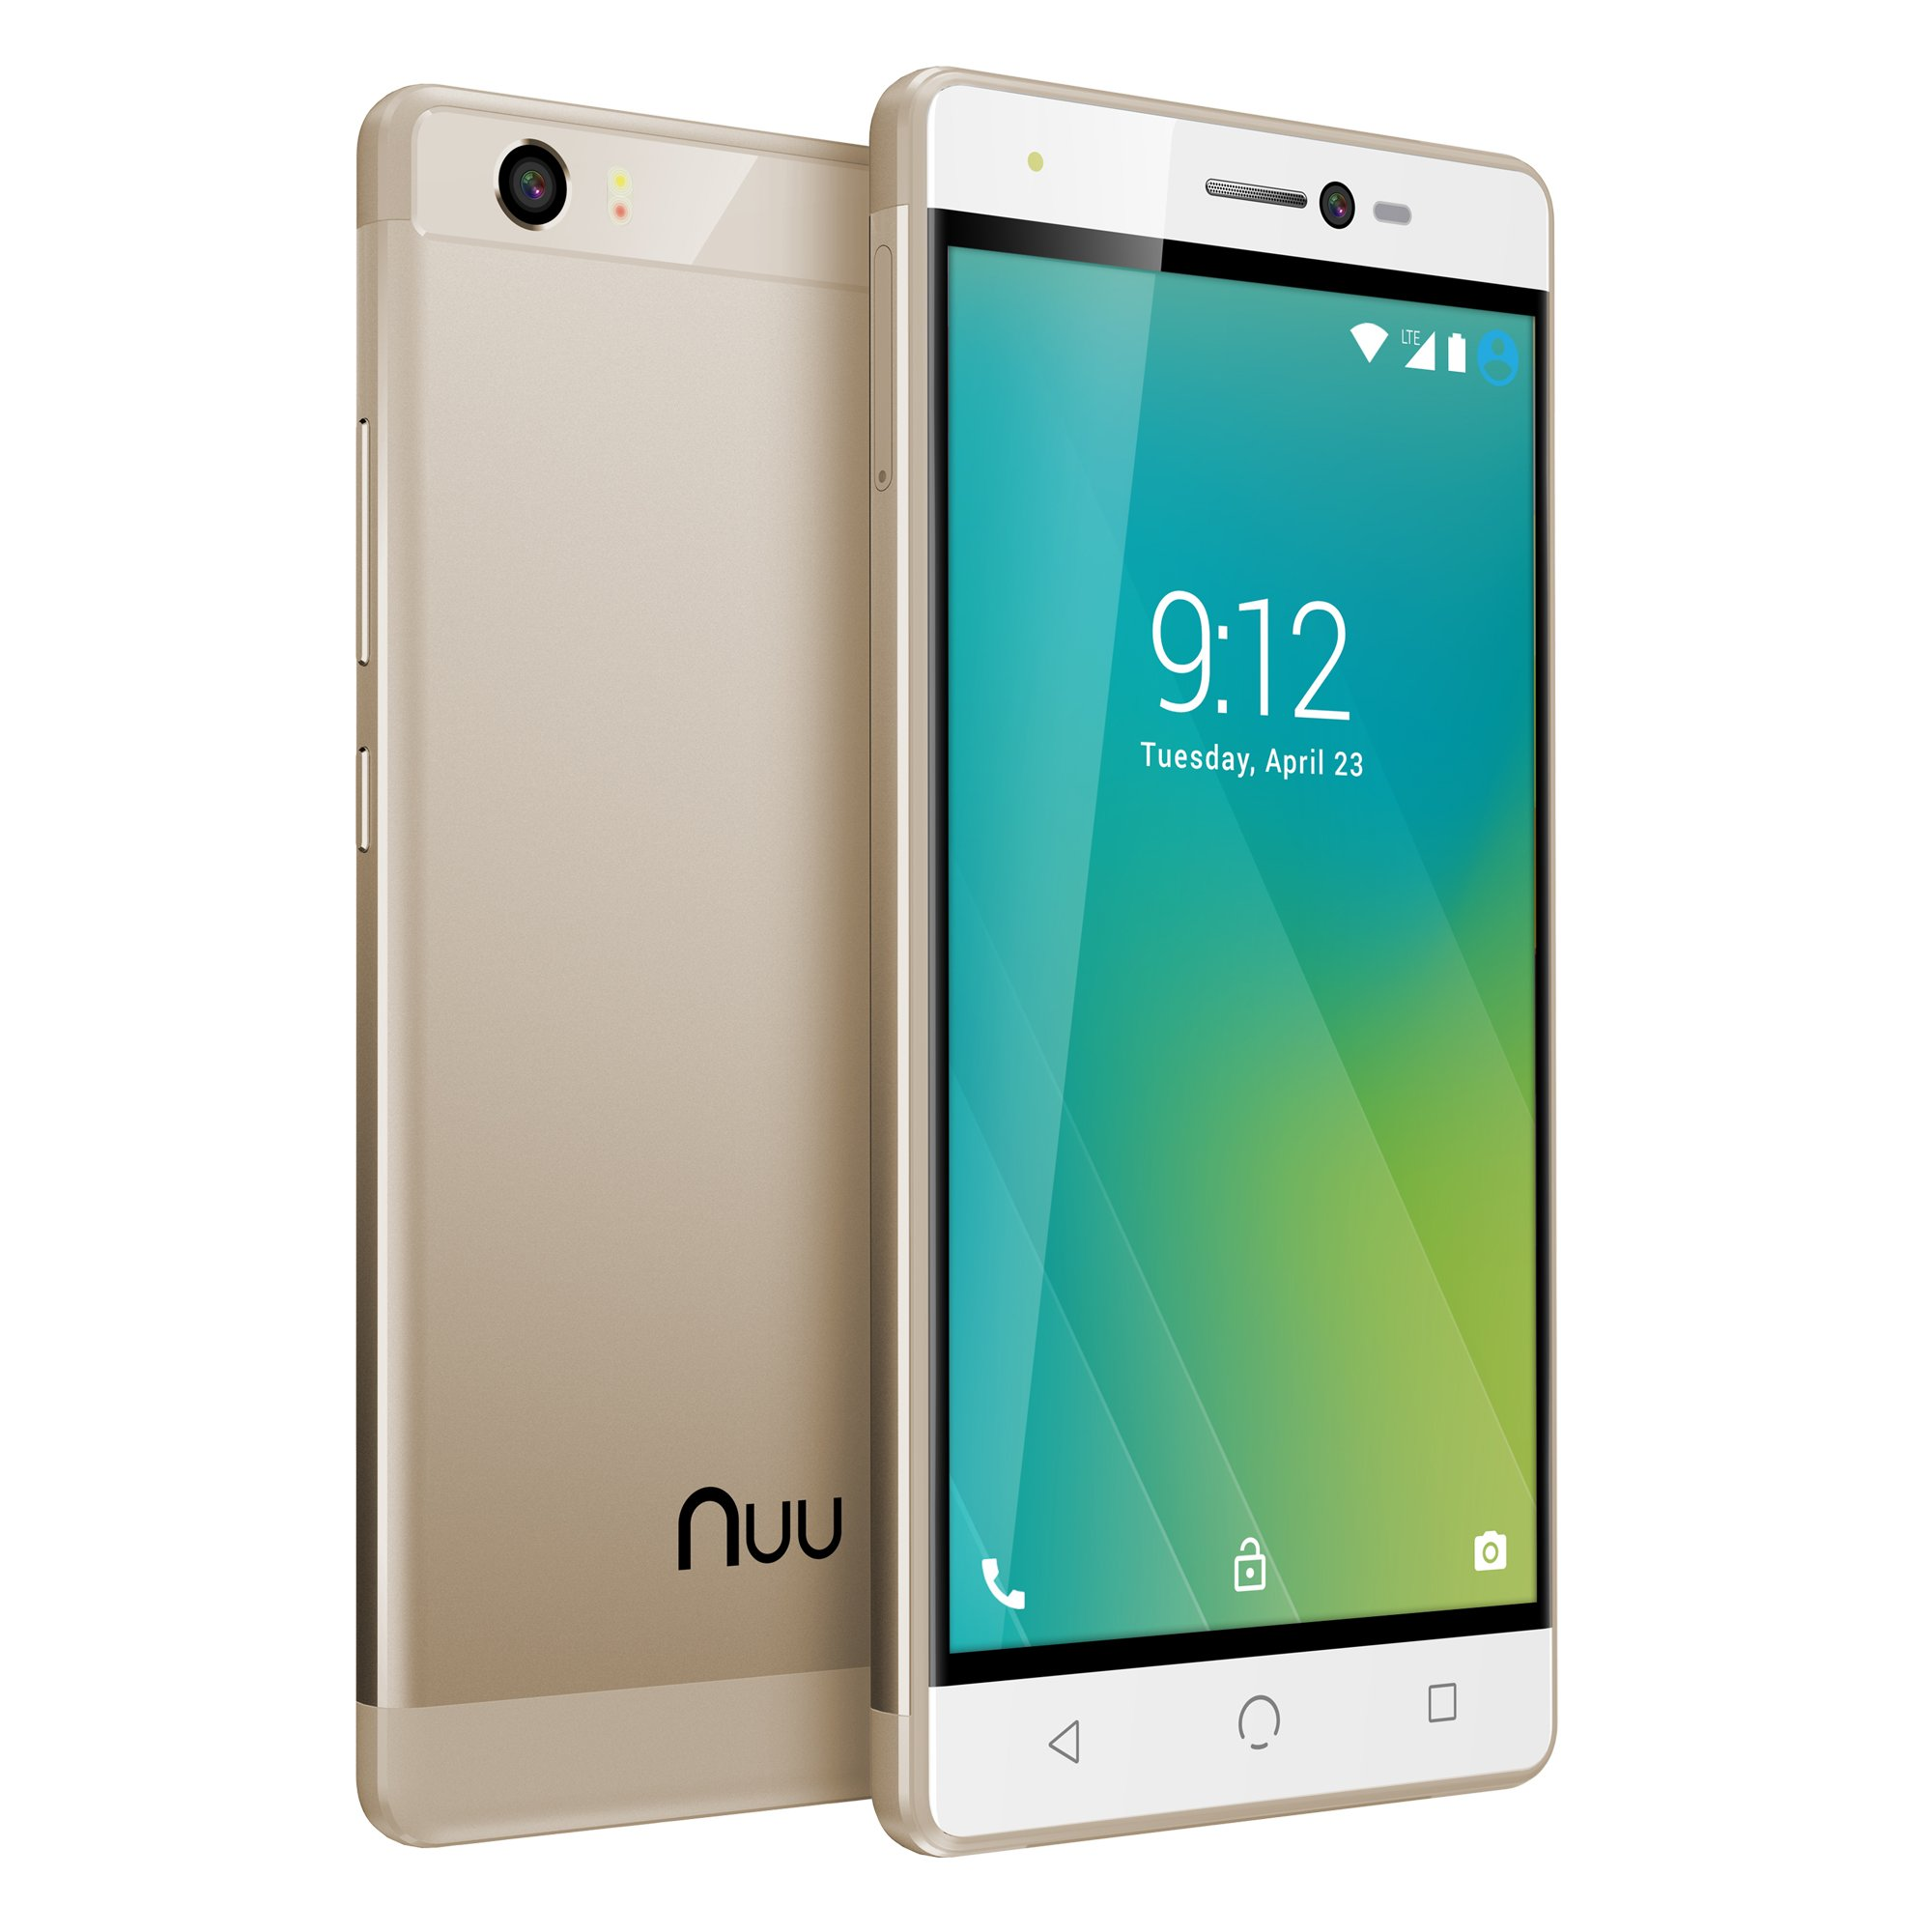 NUU Mobile M2 5.0'' HD LTE Android 7.0 Smartphone, Gold